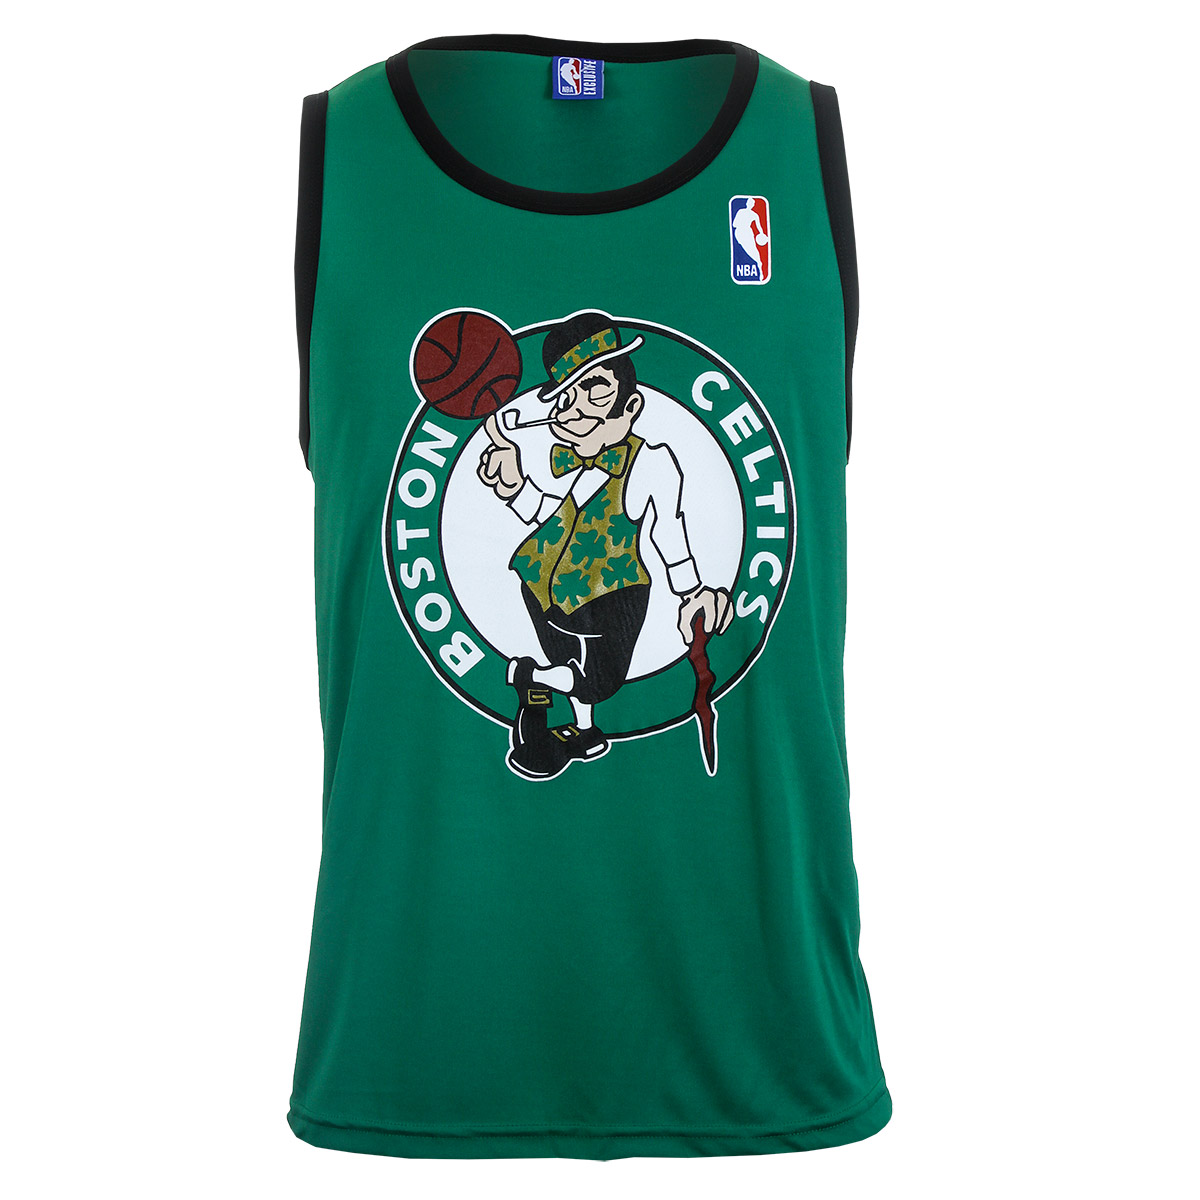 Regata Masc. Spr Nba First Celtics - Verde/Preto